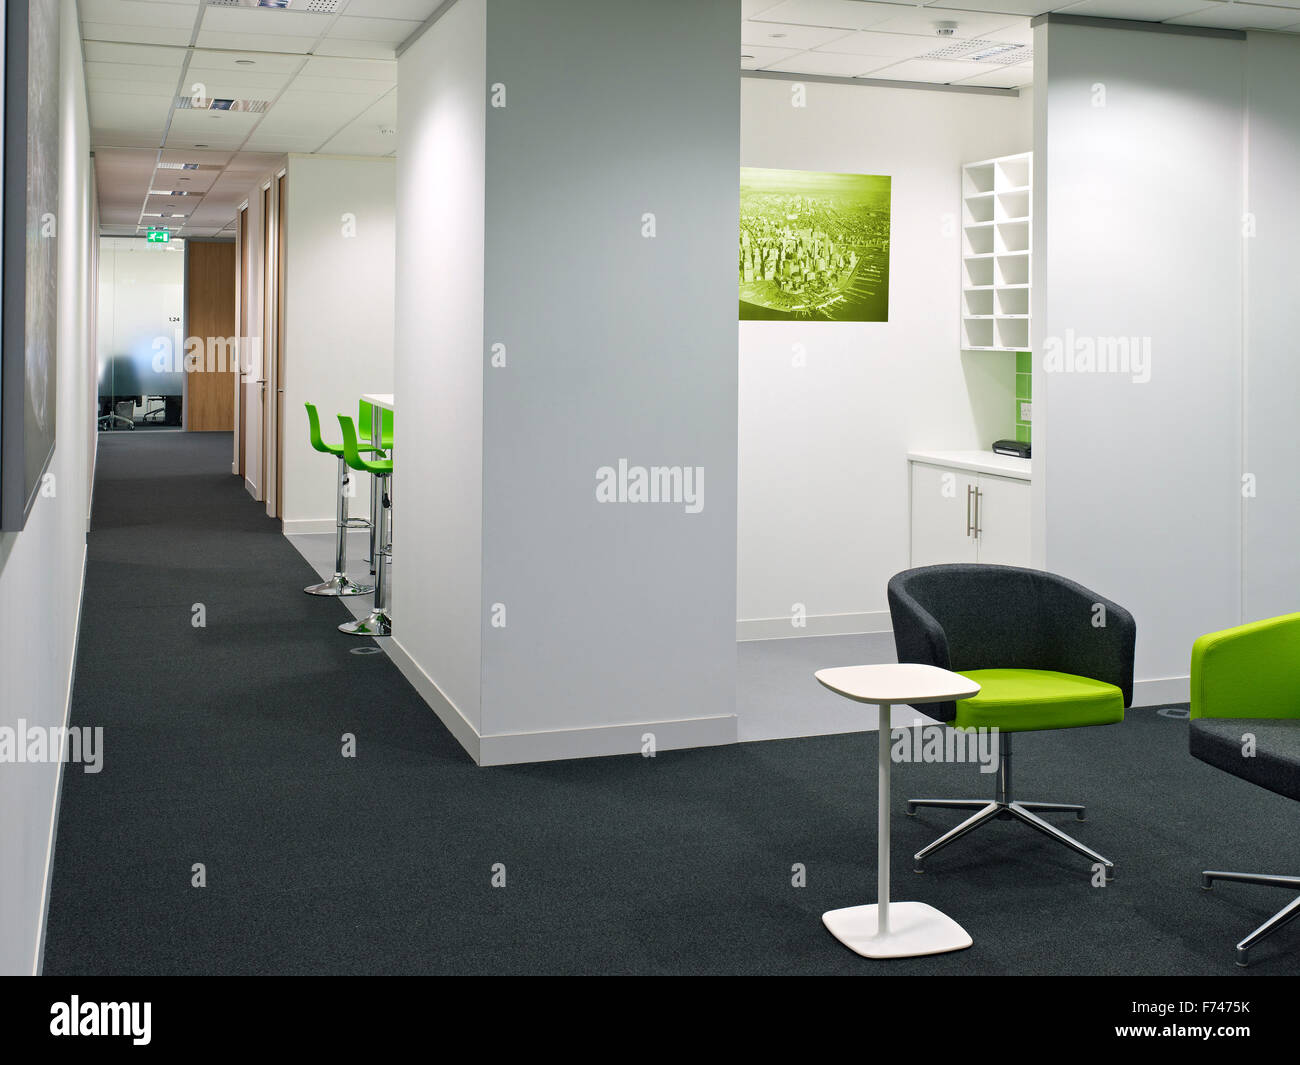 Lime green office chairs and corridor in Exchange Tower, Docklands